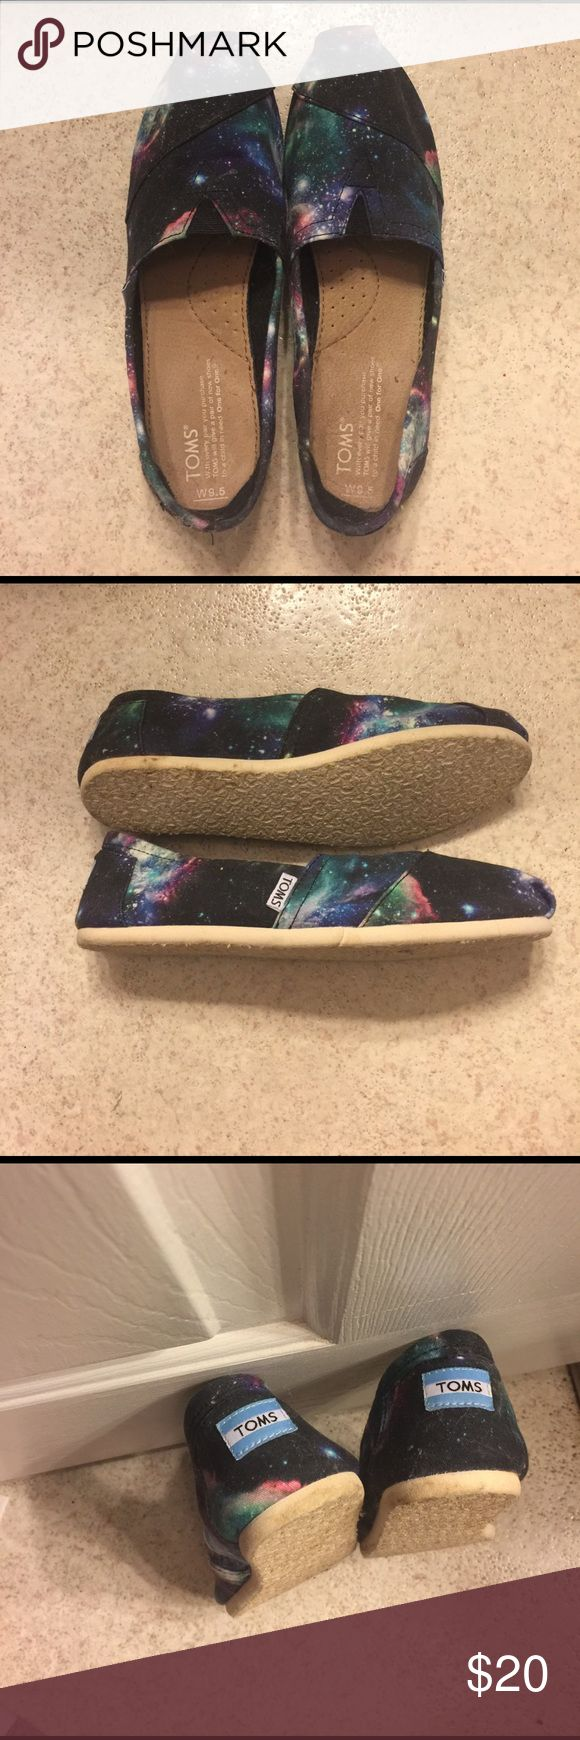 I am selling these Galaxy Tom shoes for 20 dollars These Galaxy Tom shoes are in great shape! They have only been worn once. They look almost brand new except they have a few smudges on the sides that can be cleaned off. TOMS Shoes Slippers